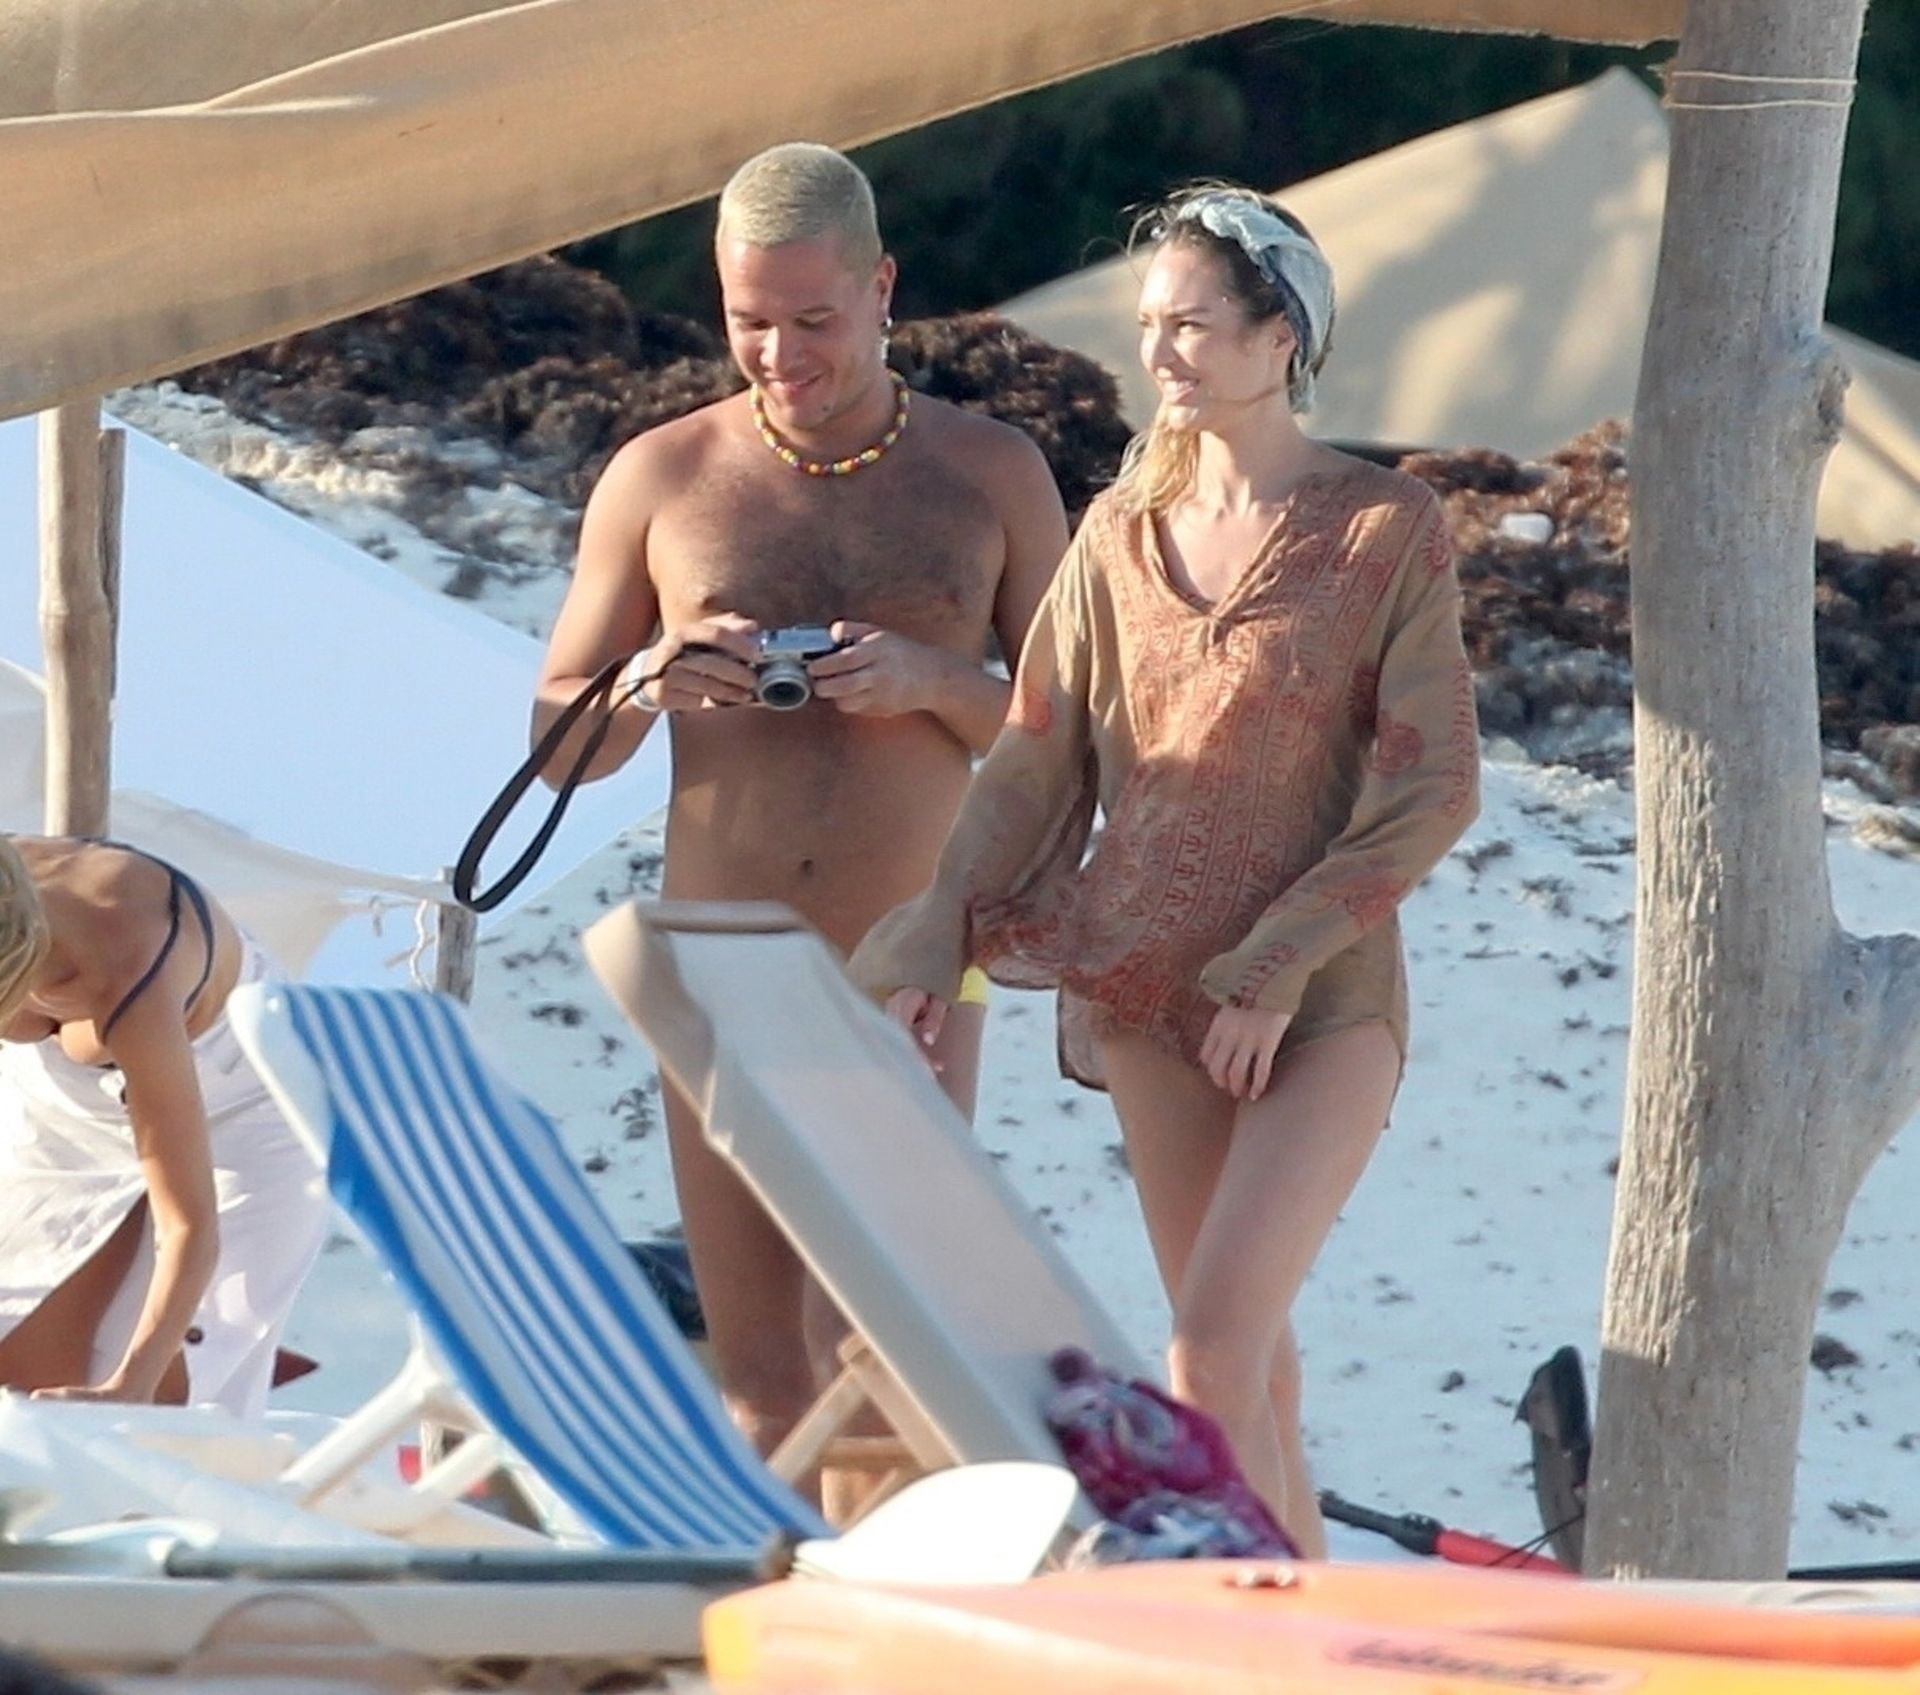 candice swanepoel naked candids at a beach in tulum